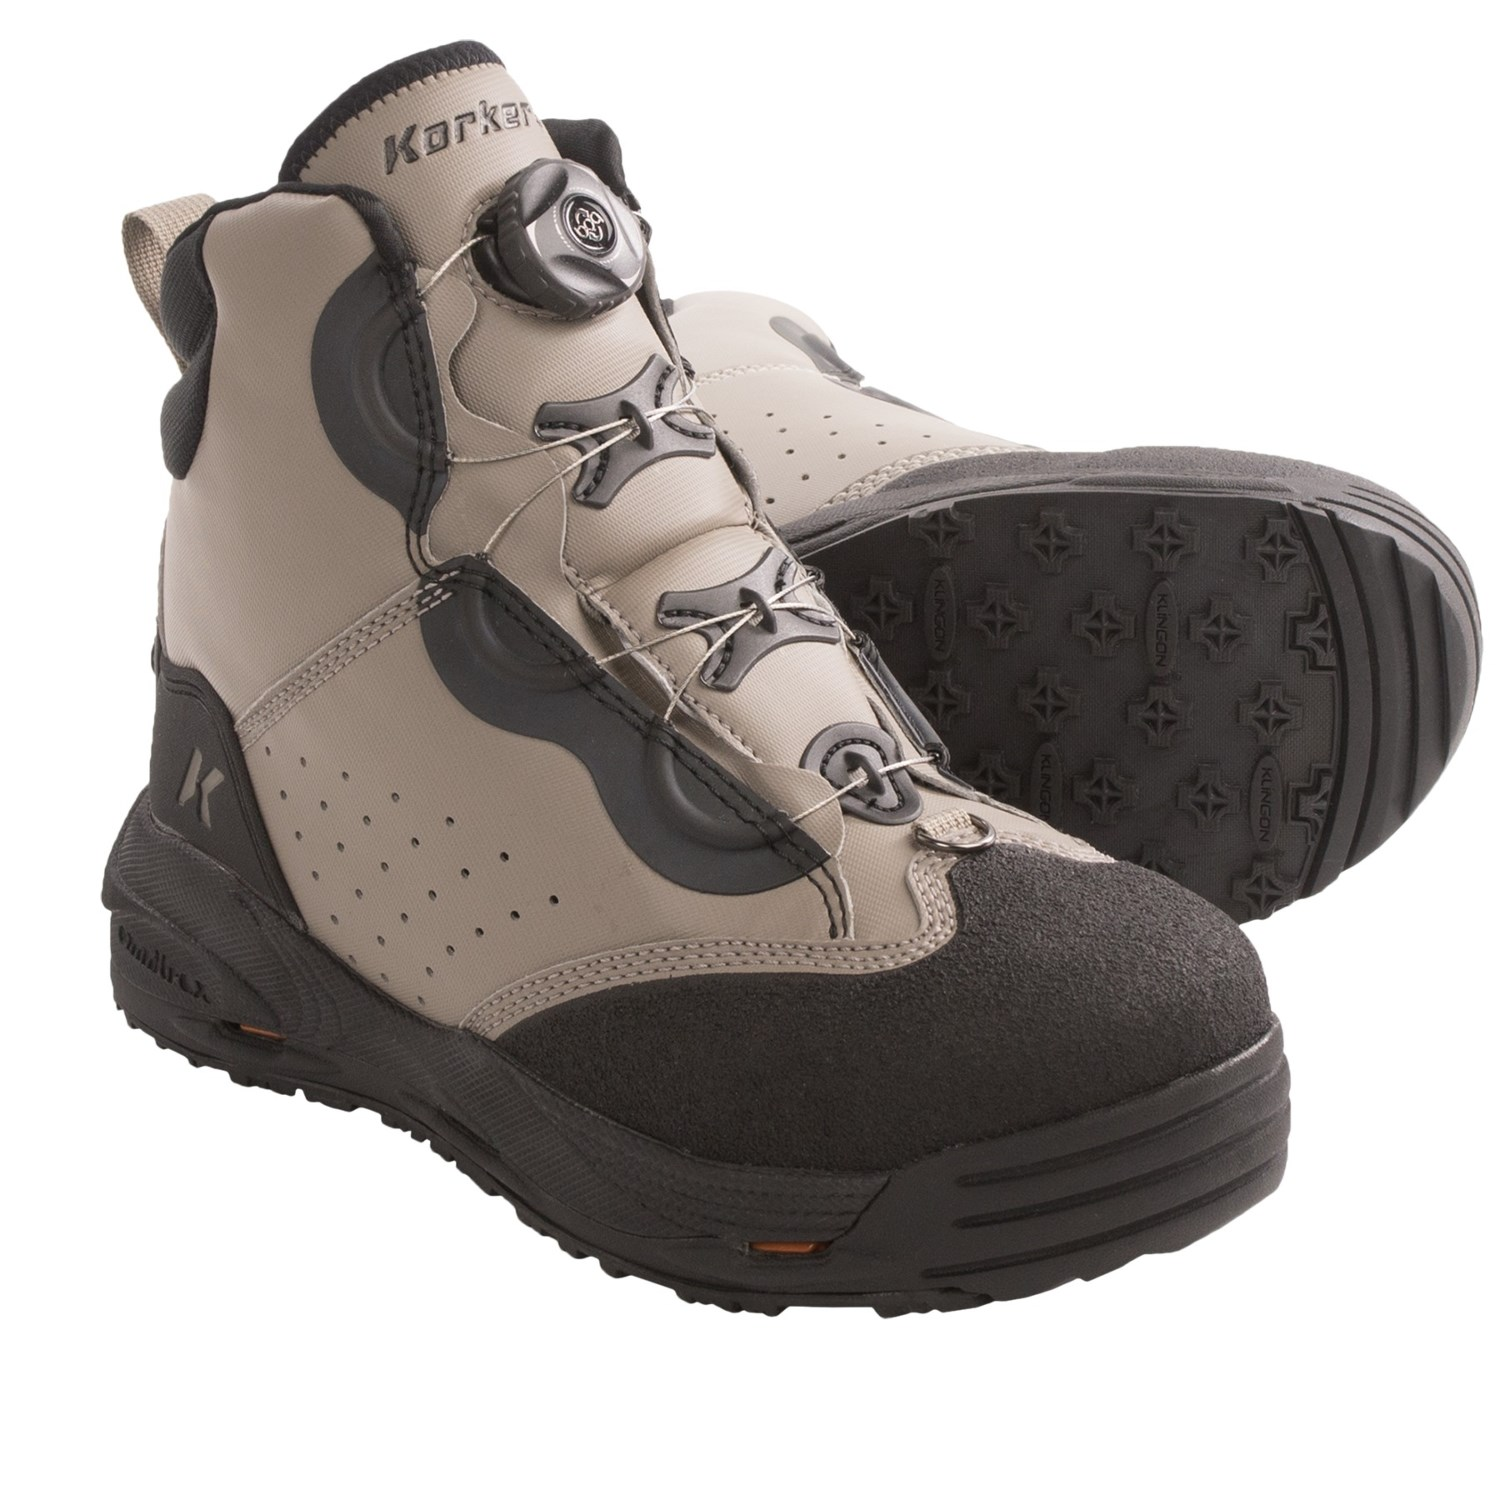 Korkers Chrome Wading Boots For Men And Women 5875p